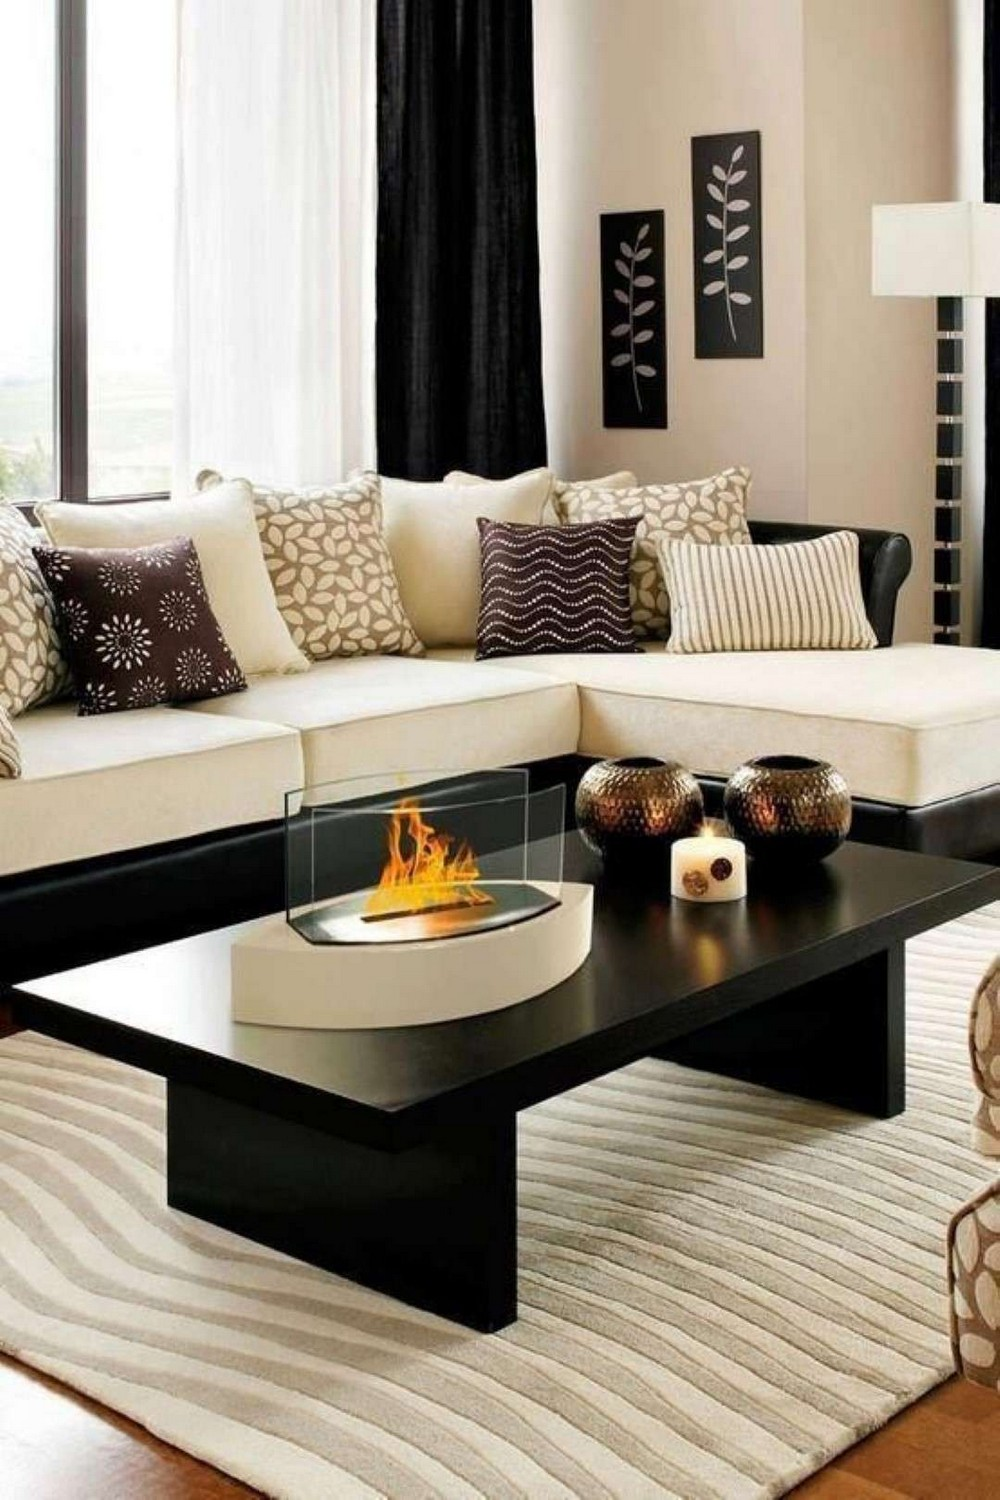 modern center tables 20 Modern Center Tables for a Comfortable and Luxurious Living Room 20 Modern Center Tables for a Comfortable and Luxurious Living Room 10